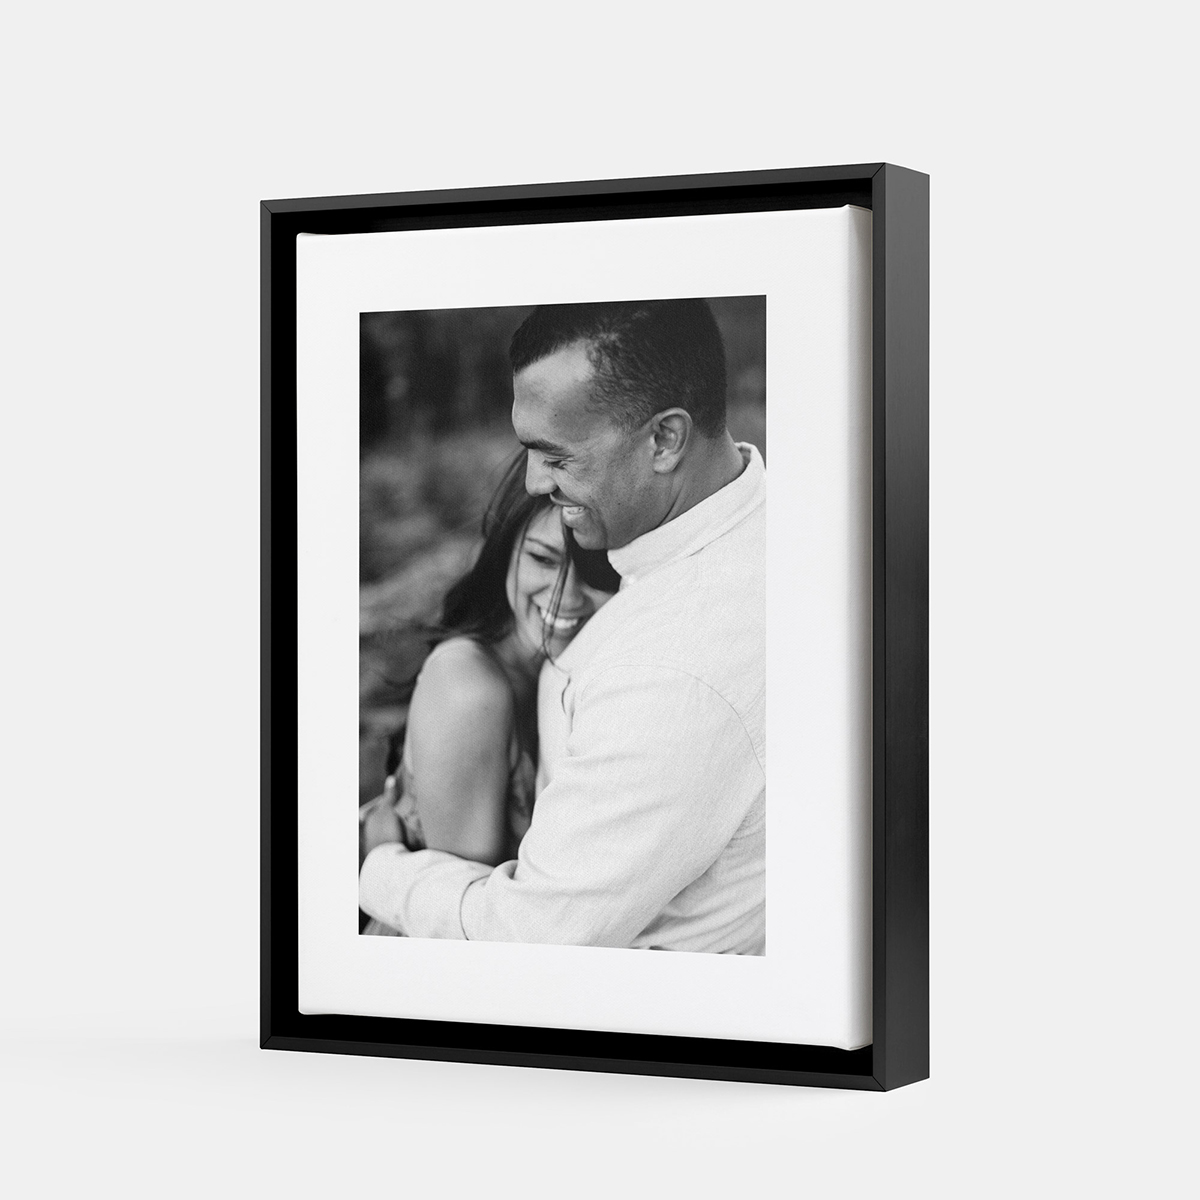 Framed Canvas Print of a wedding photo printed by Artifact Uprising